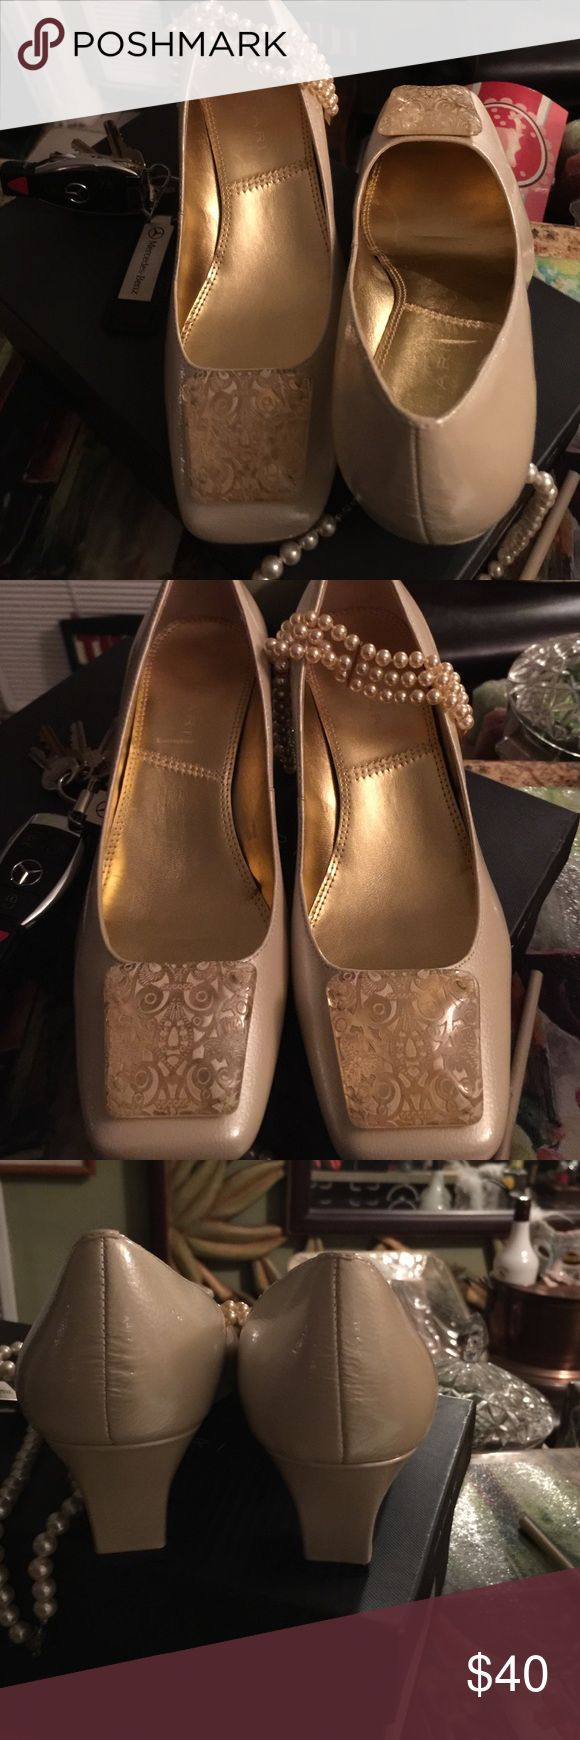 """Ladies Shoes New Tahari in original box size 7.5 M cream leather with clear toe stone with gold plated design 2"""" heels Tahari Shoes Heels"""